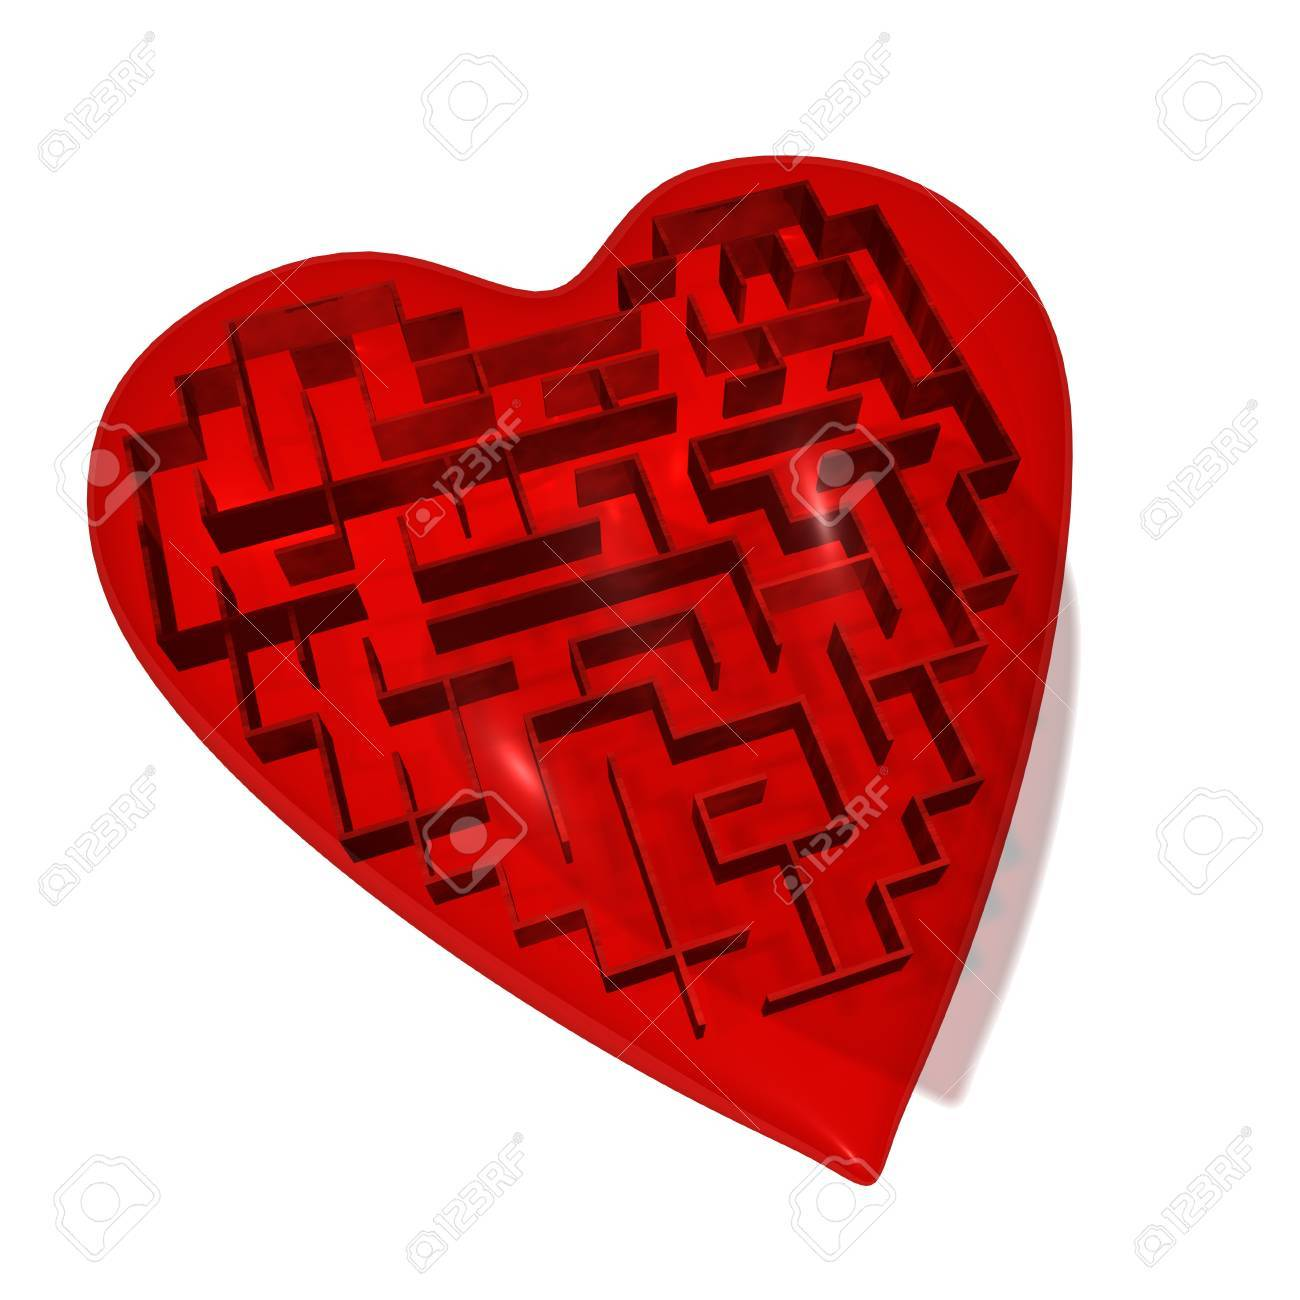 Heart maze Stock Photo - 8603847